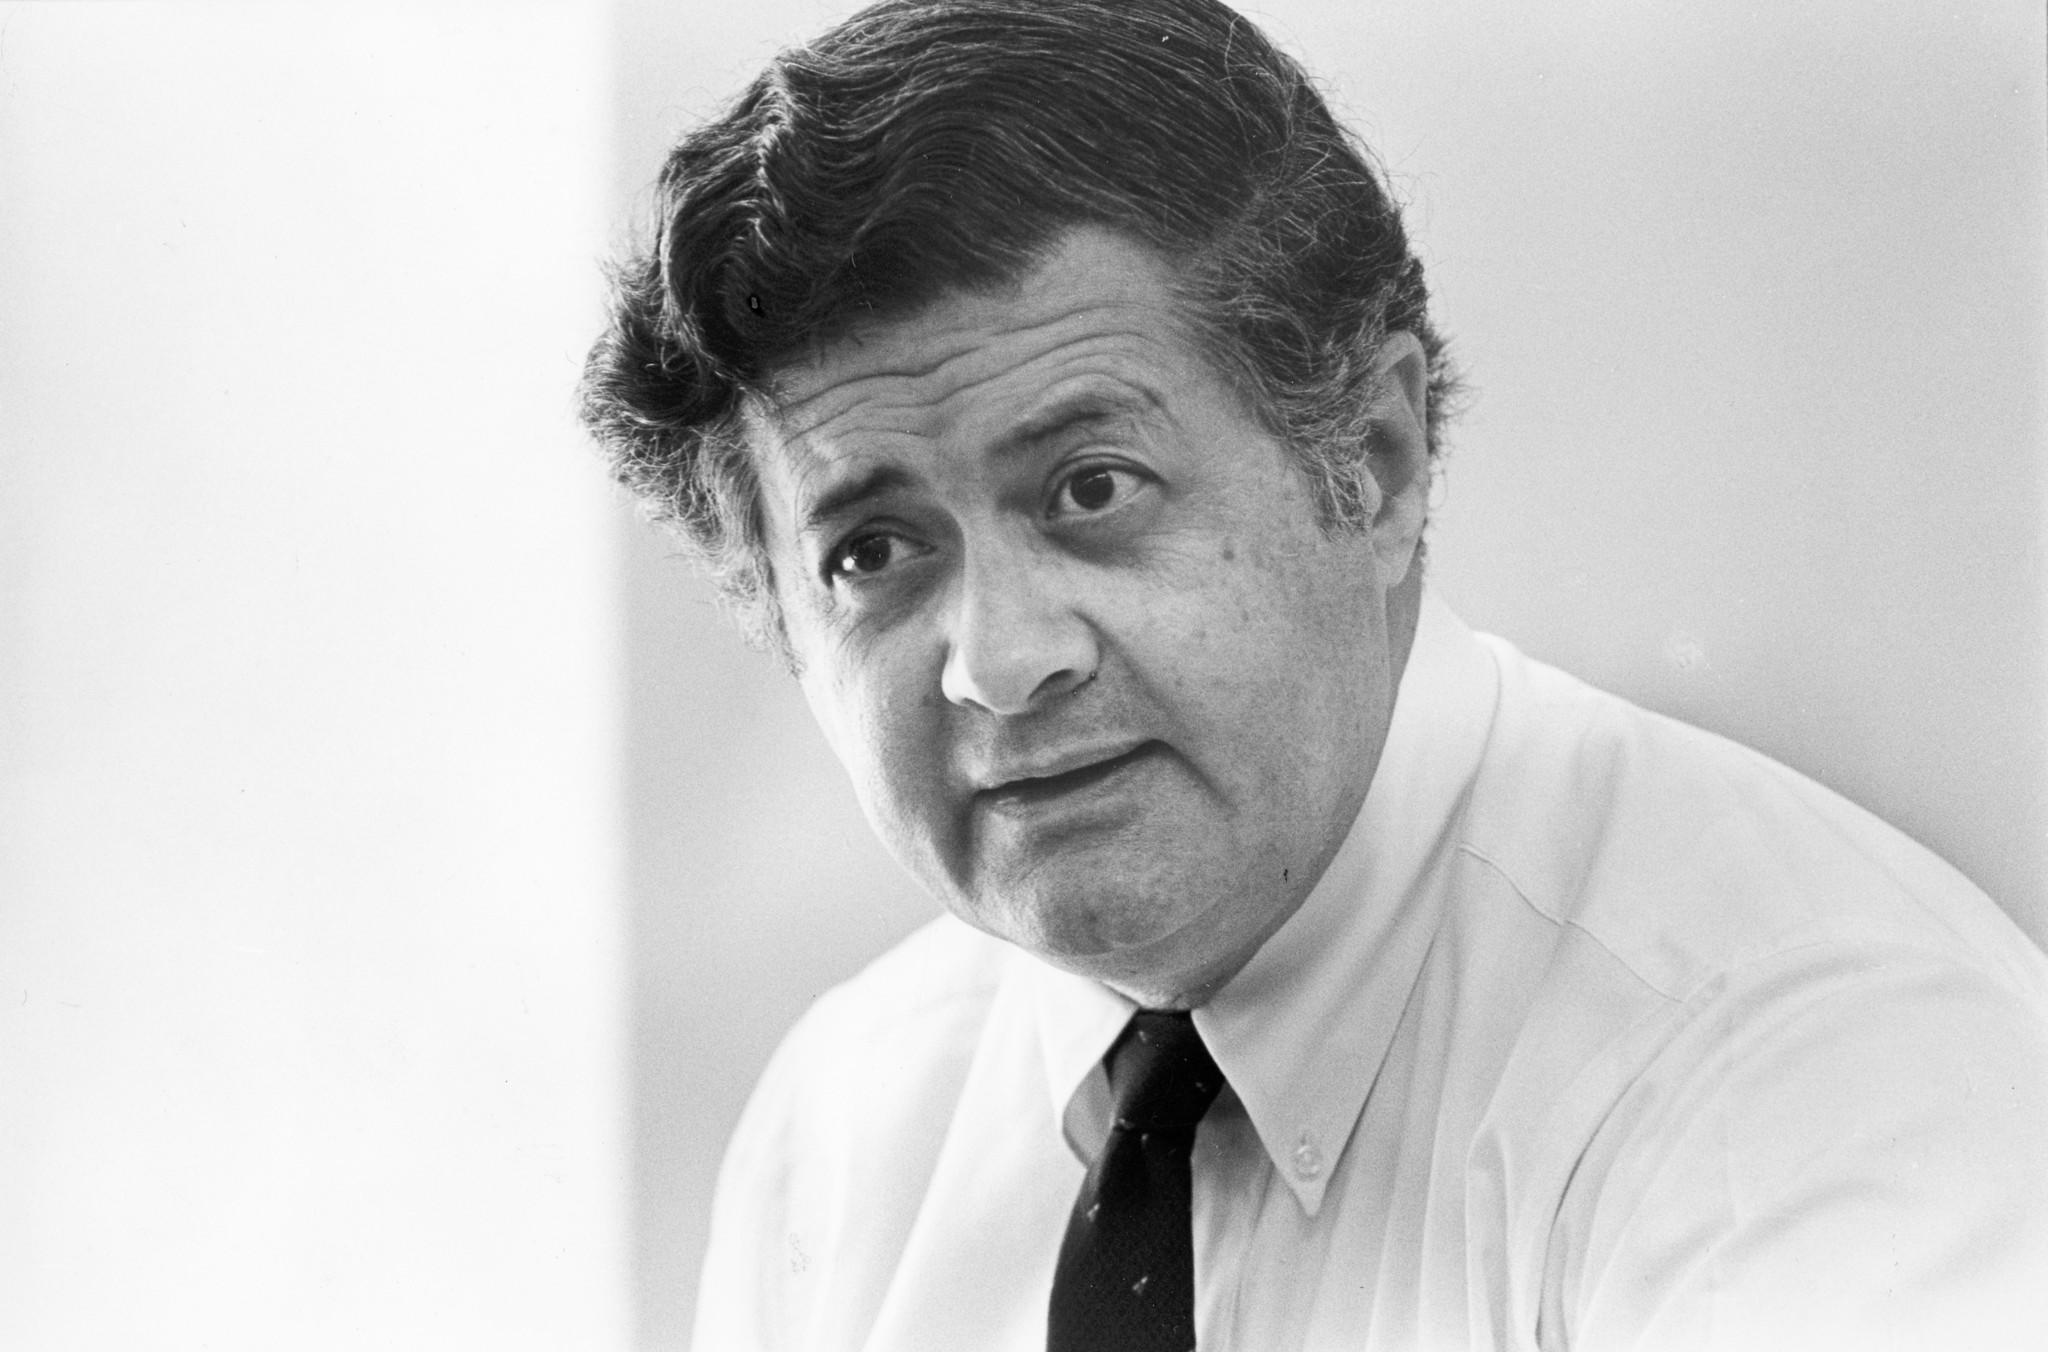 Robert L. Brosio, chief of the criminal division of the U.S. attorney's office in Los Angeles, in 1986.